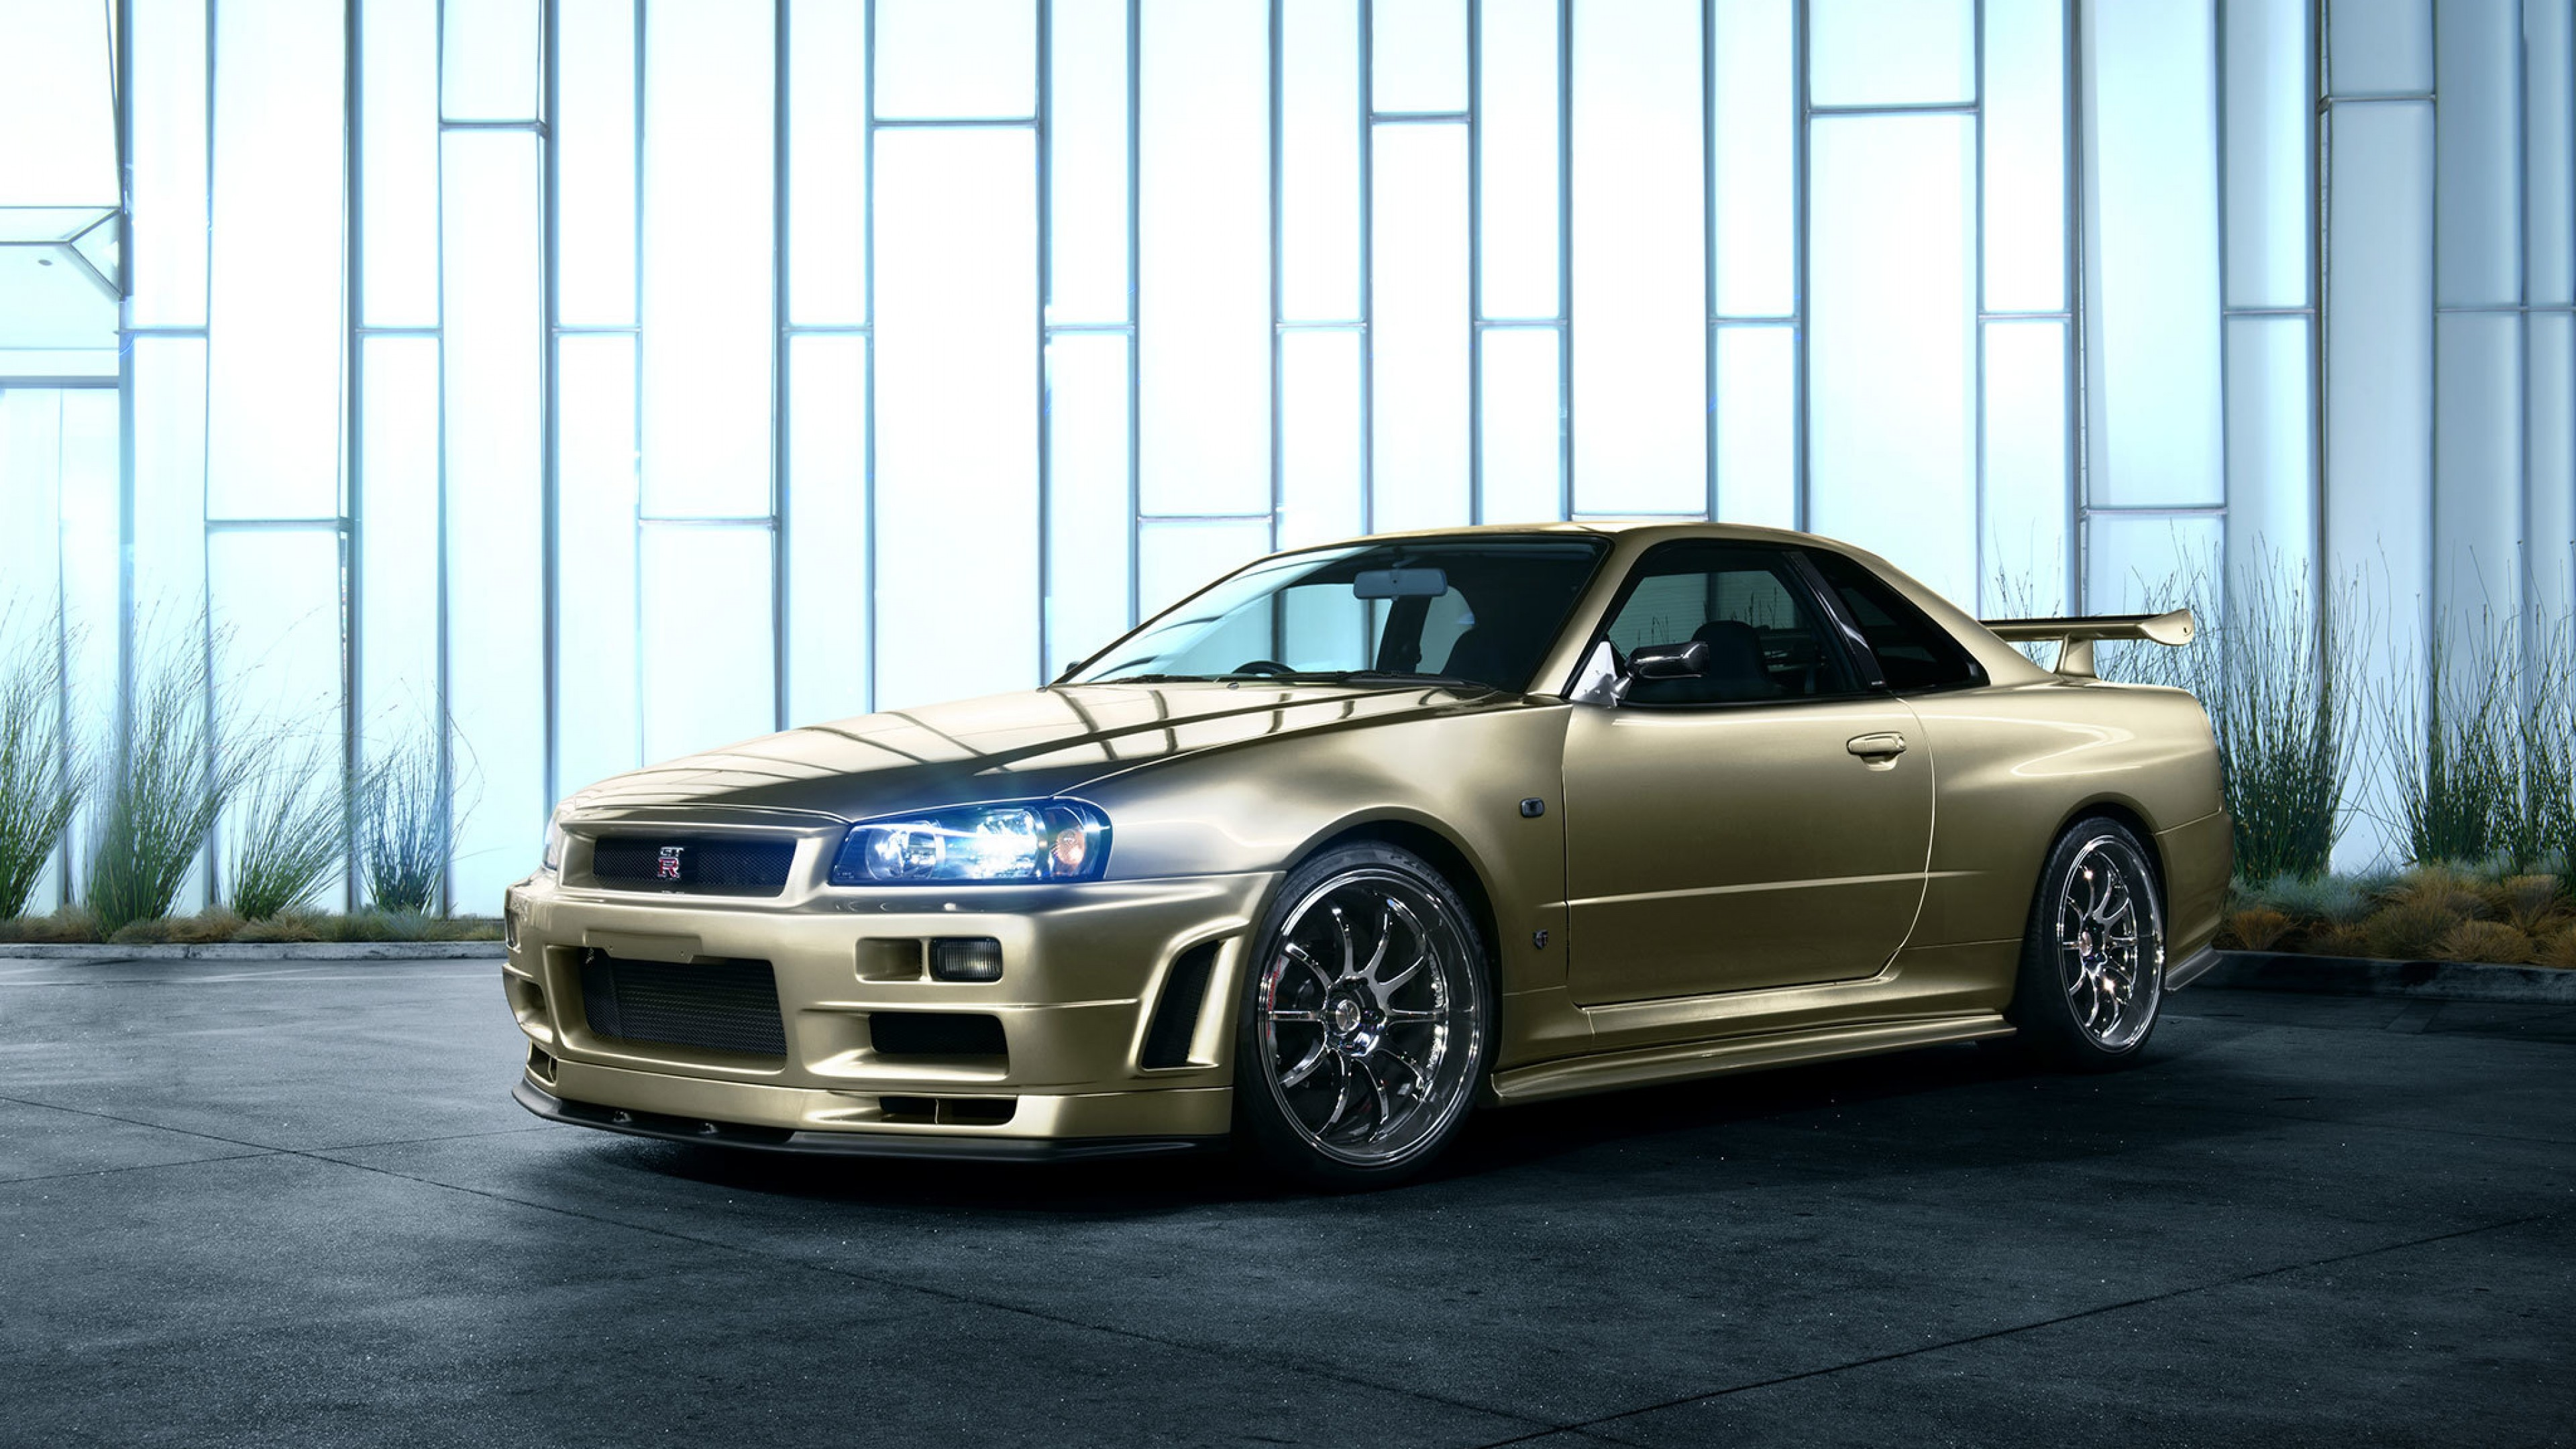 r34 skyline wallpaper  70  images